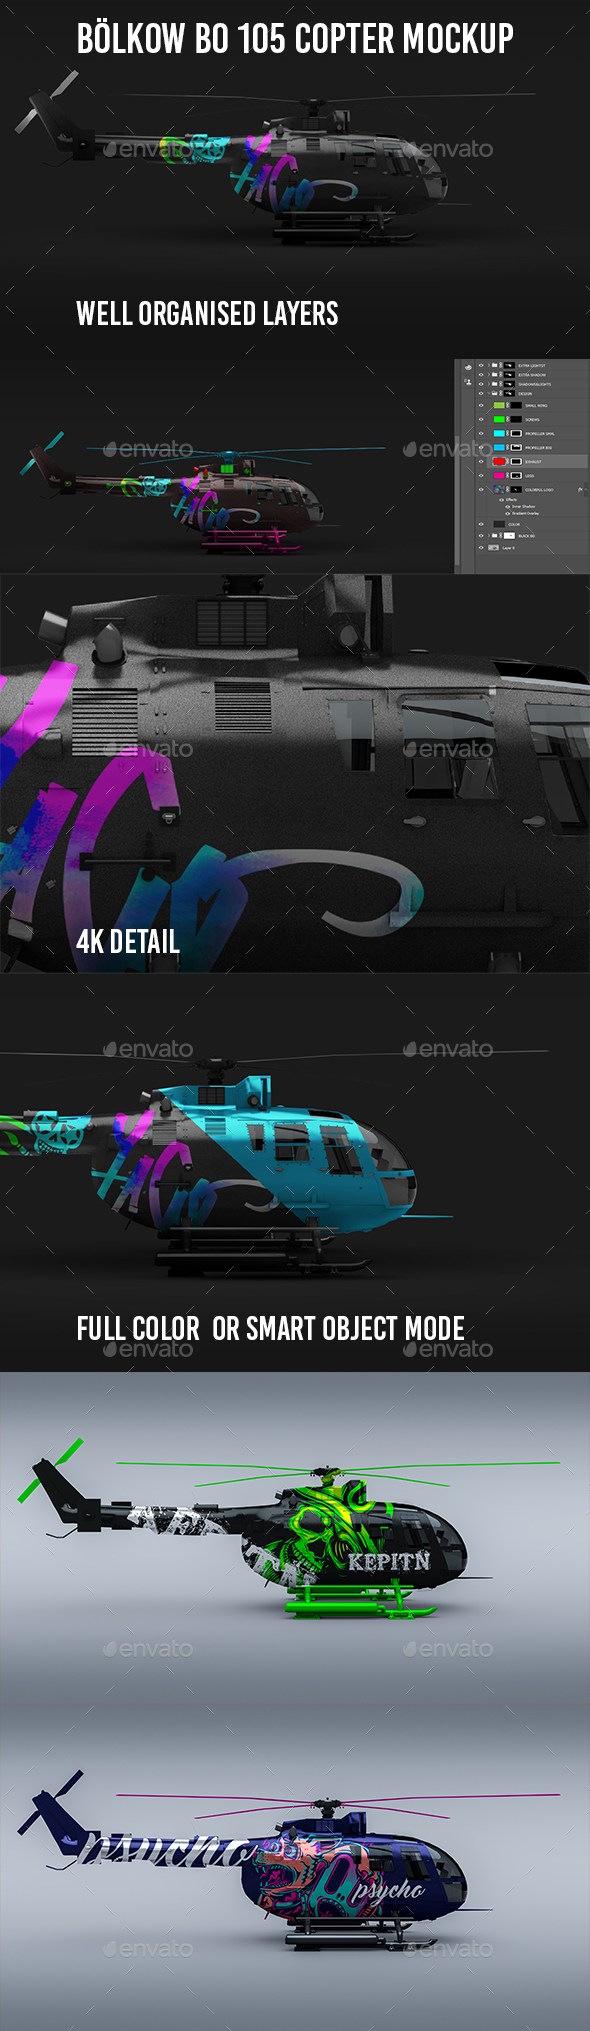 Helicopter Bölkow Bo 105 Mockup 4K - Vehicle Wraps Print